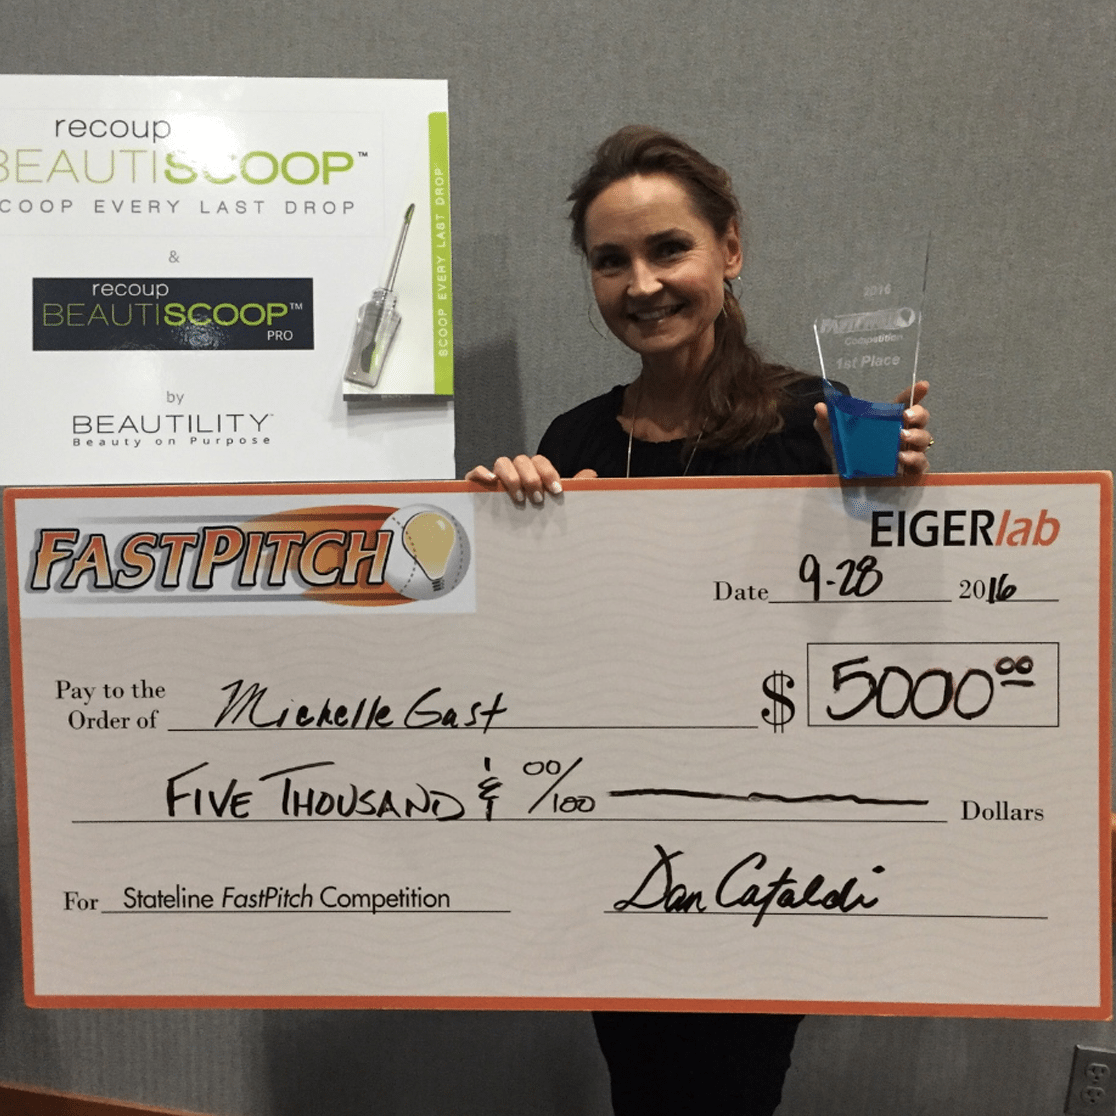 Recipient of FastPitch Innovation Competition - September 2016